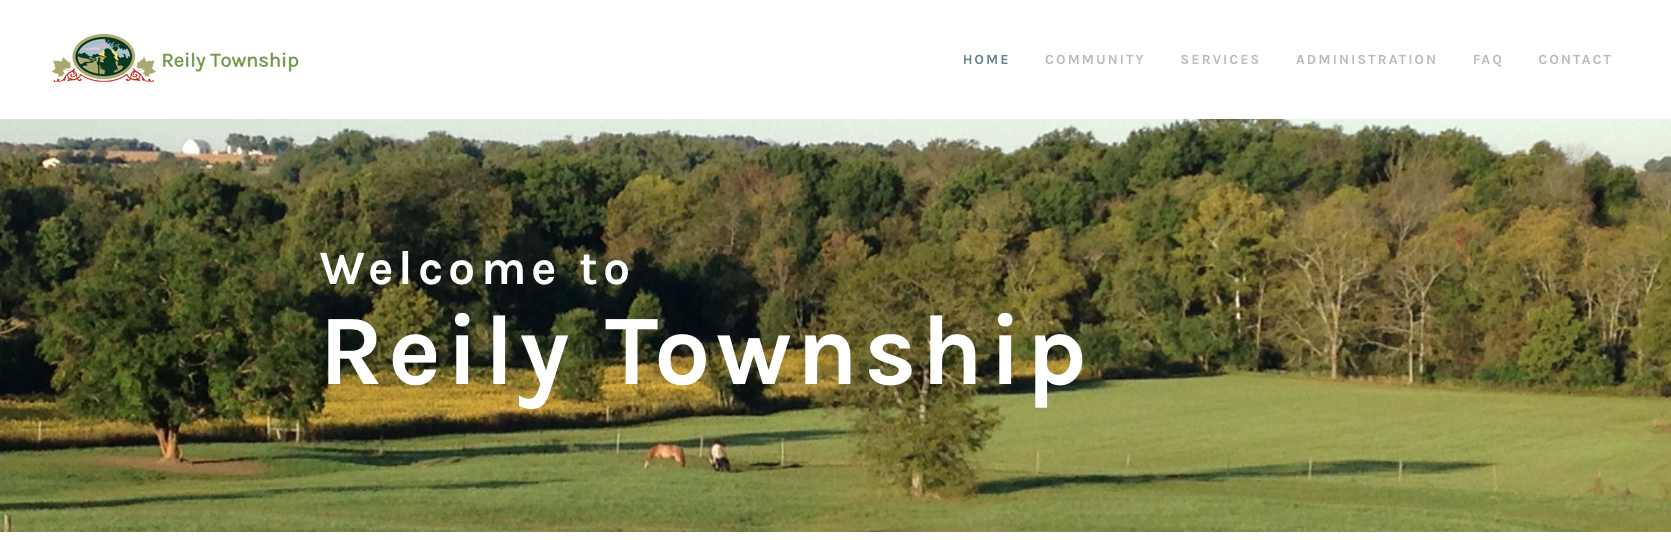 The Reily Township website homepage.